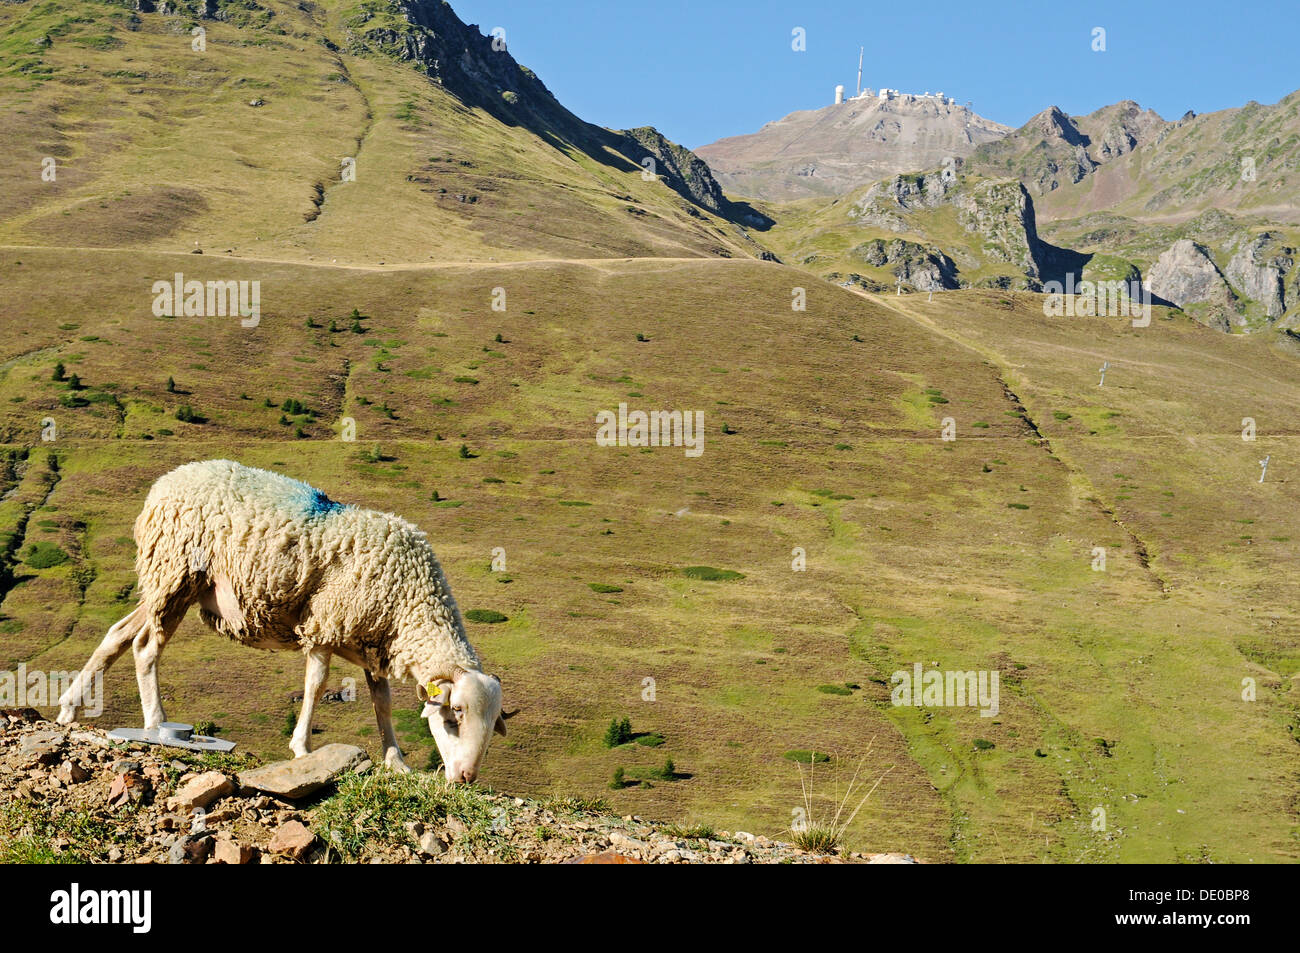 A grazing sheep, Pic du Midi de Bigorre mountain with the observatory at the back, Col du Tourmalet, mountains, Bareges - Stock Image